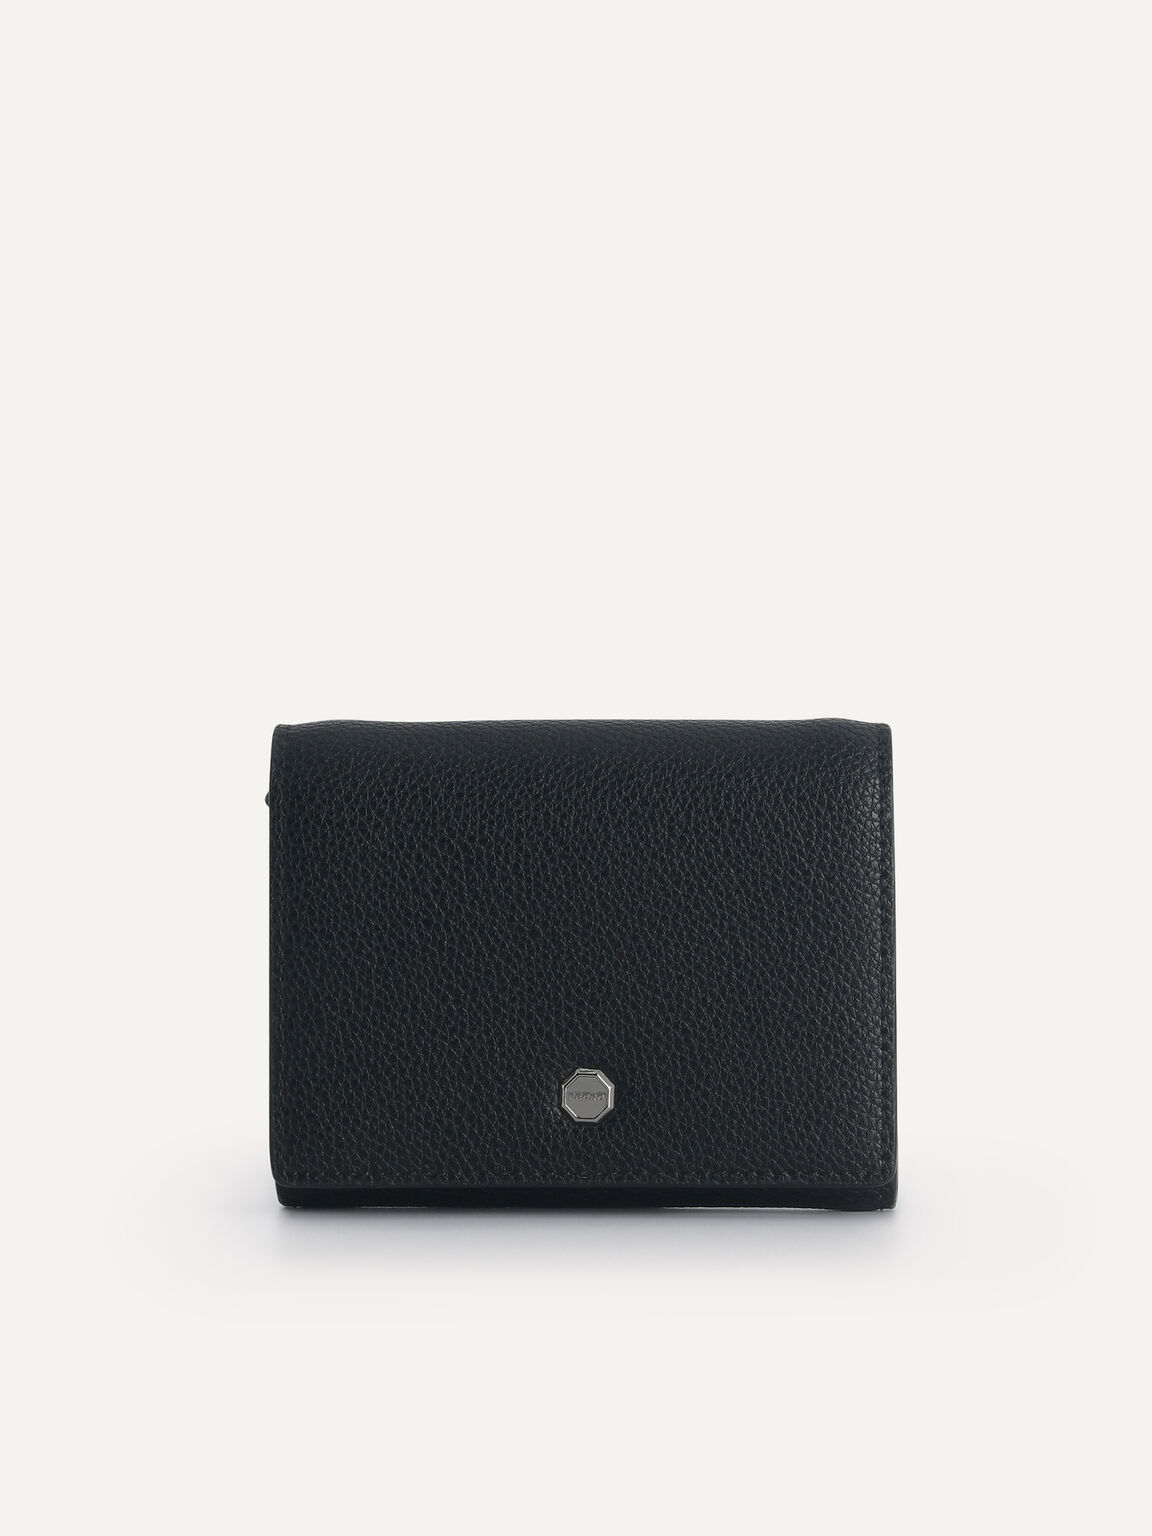 Textured Leather Pouch, Black, hi-res